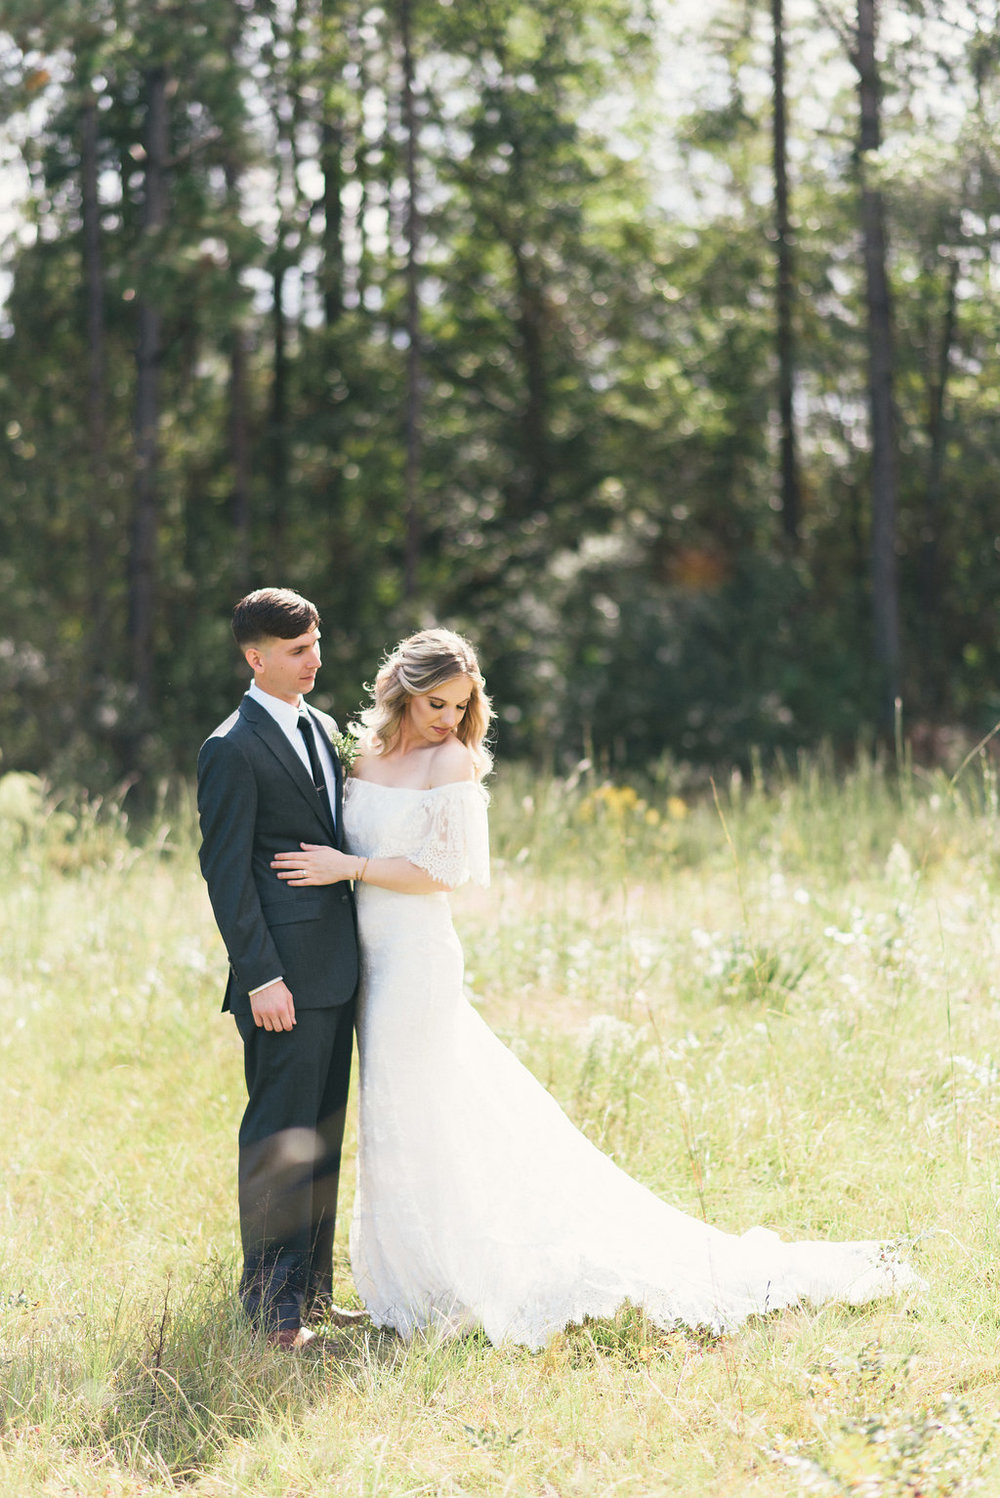 ivory-and-beau-bridal-boutique-meg-hill-photography-laurence-daughters-of-simone-boho-wedding-gown-douglas-ga-wedding-16.jpg